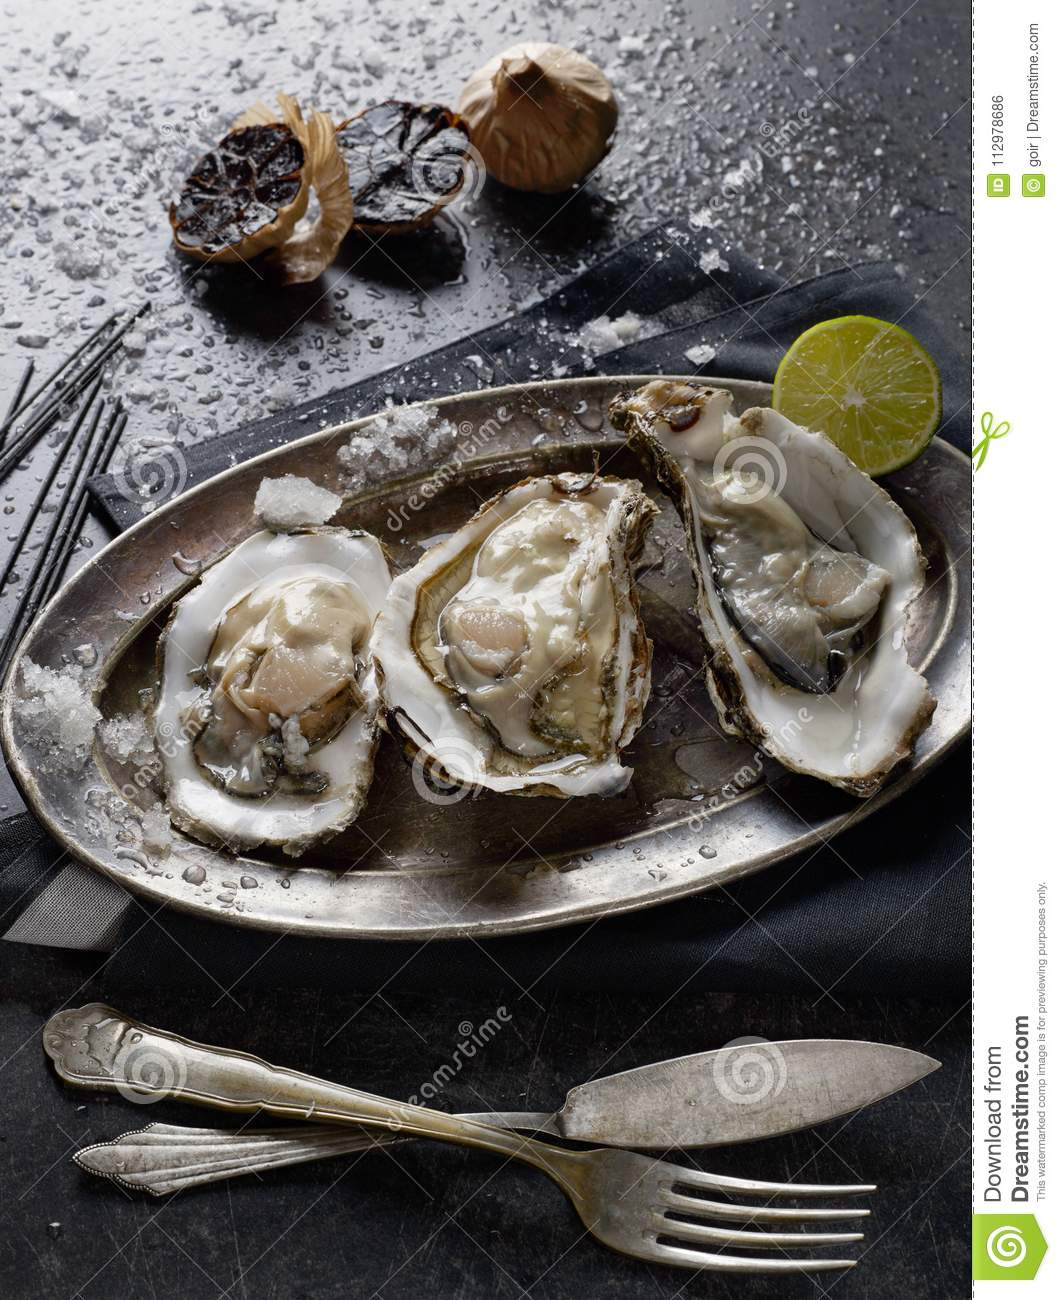 Oysters from above